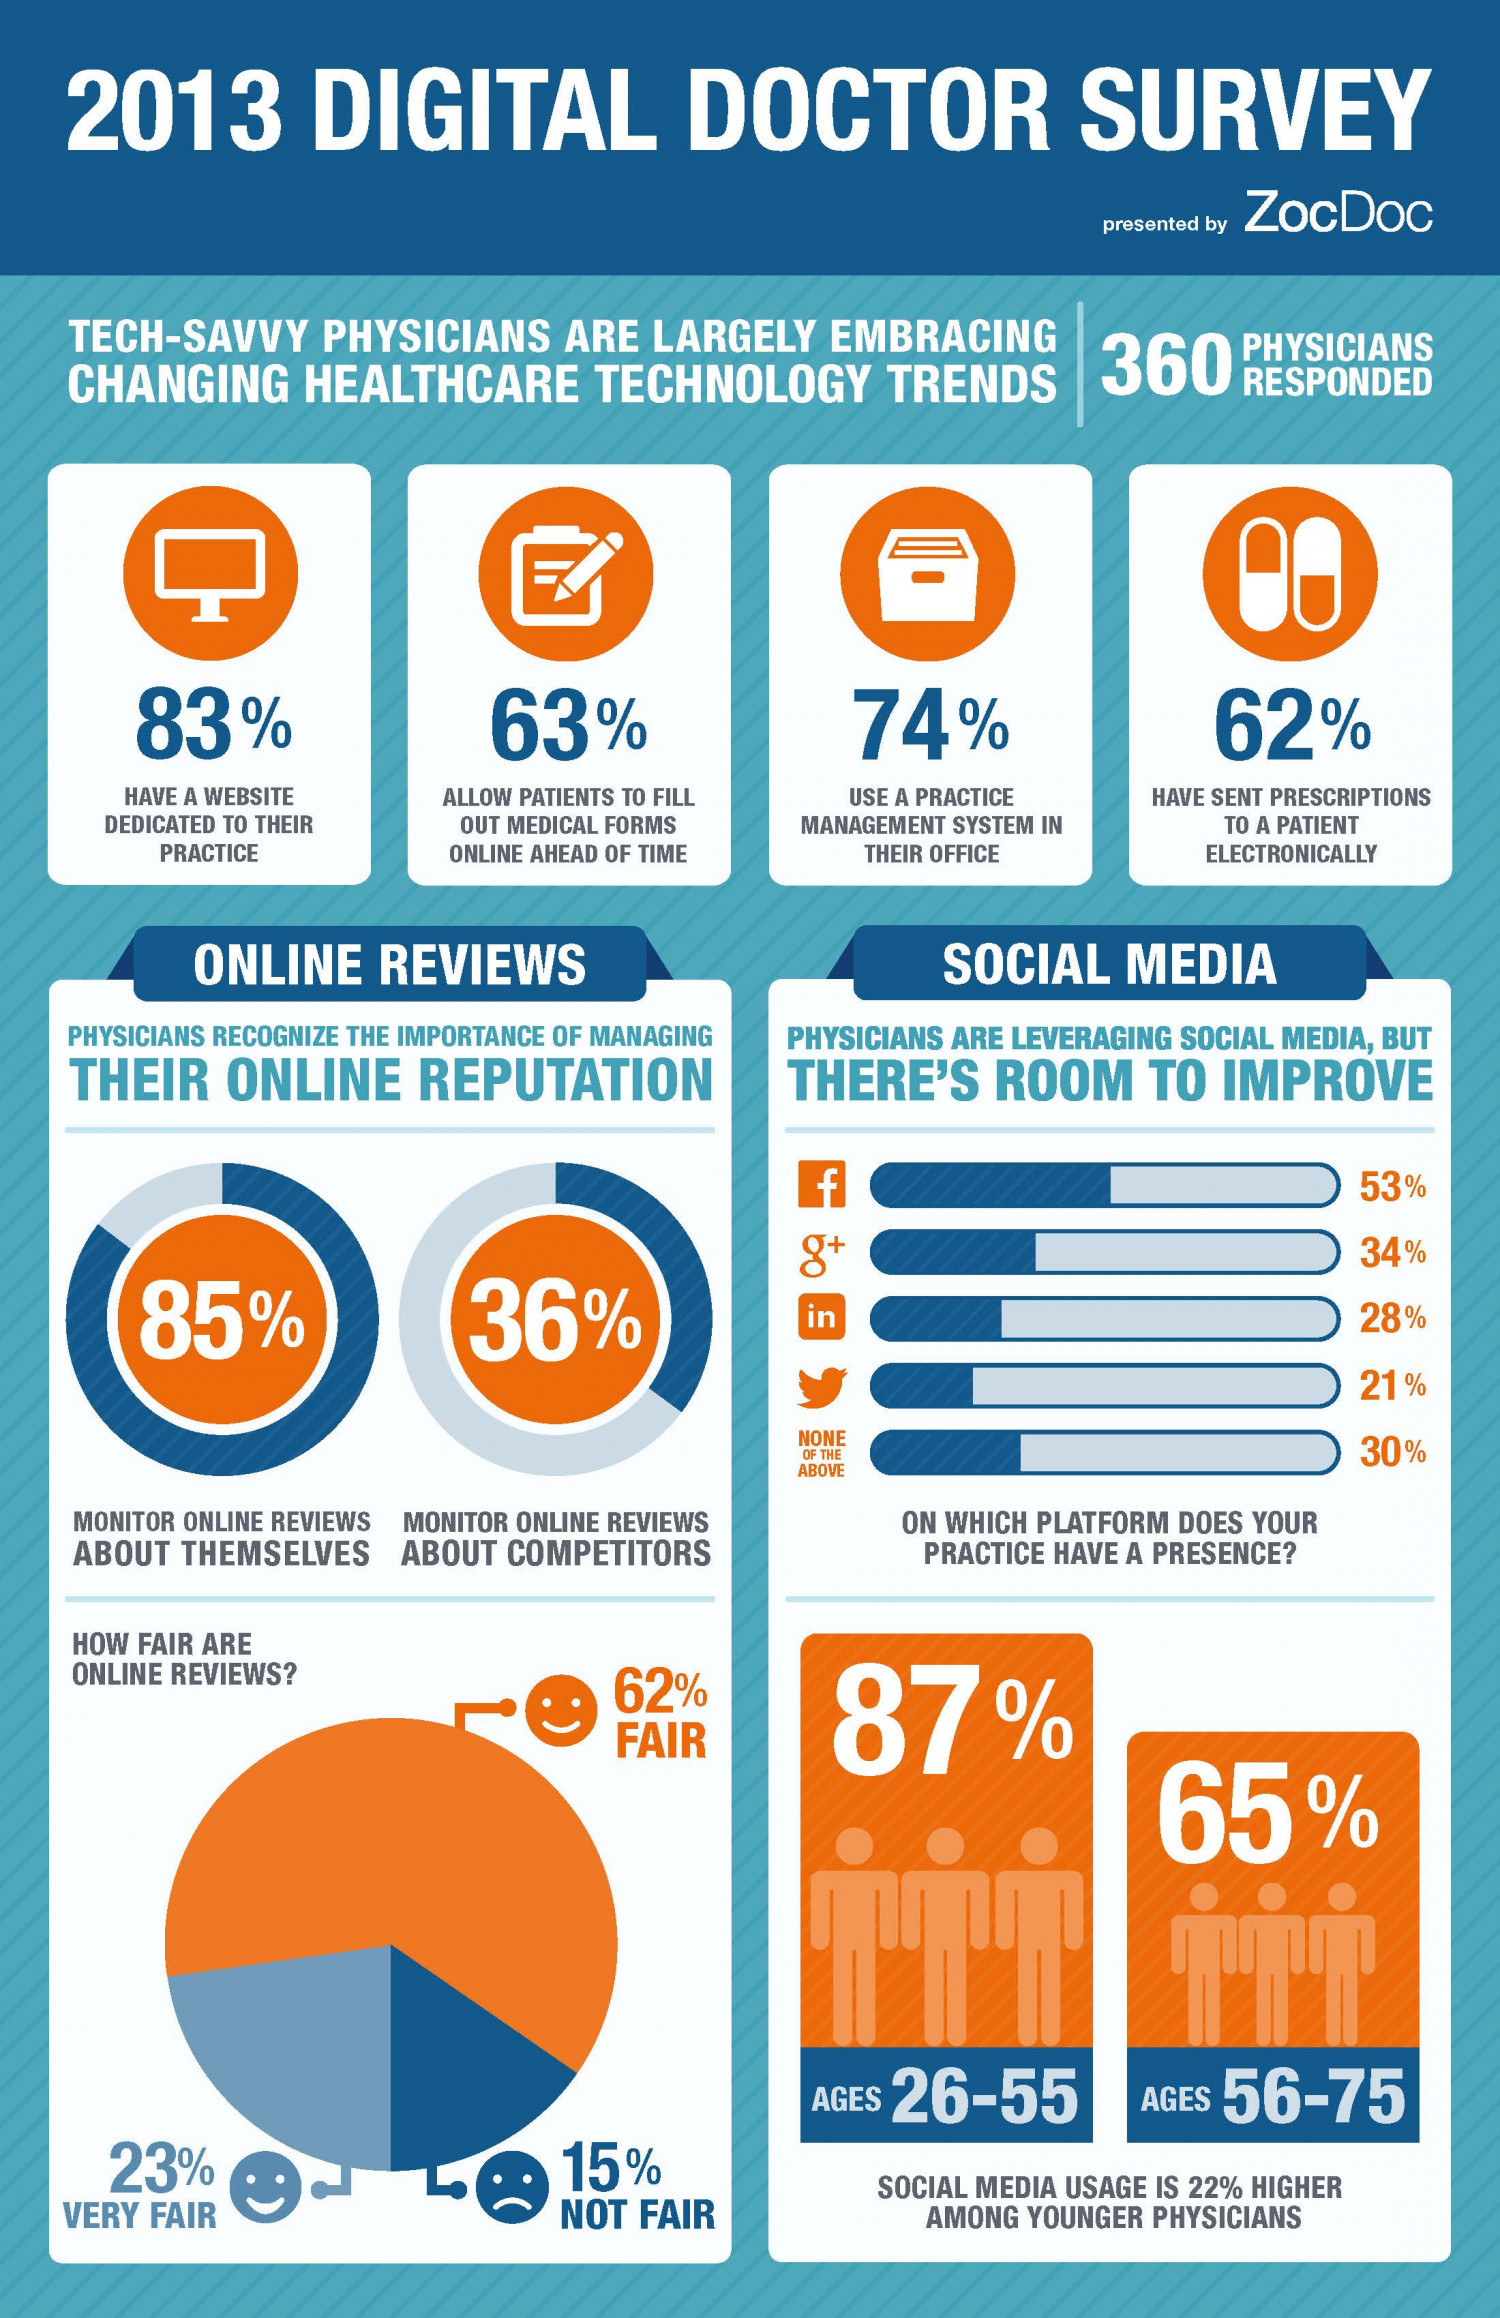 2013 Digital Doctor Survey Results Infographic